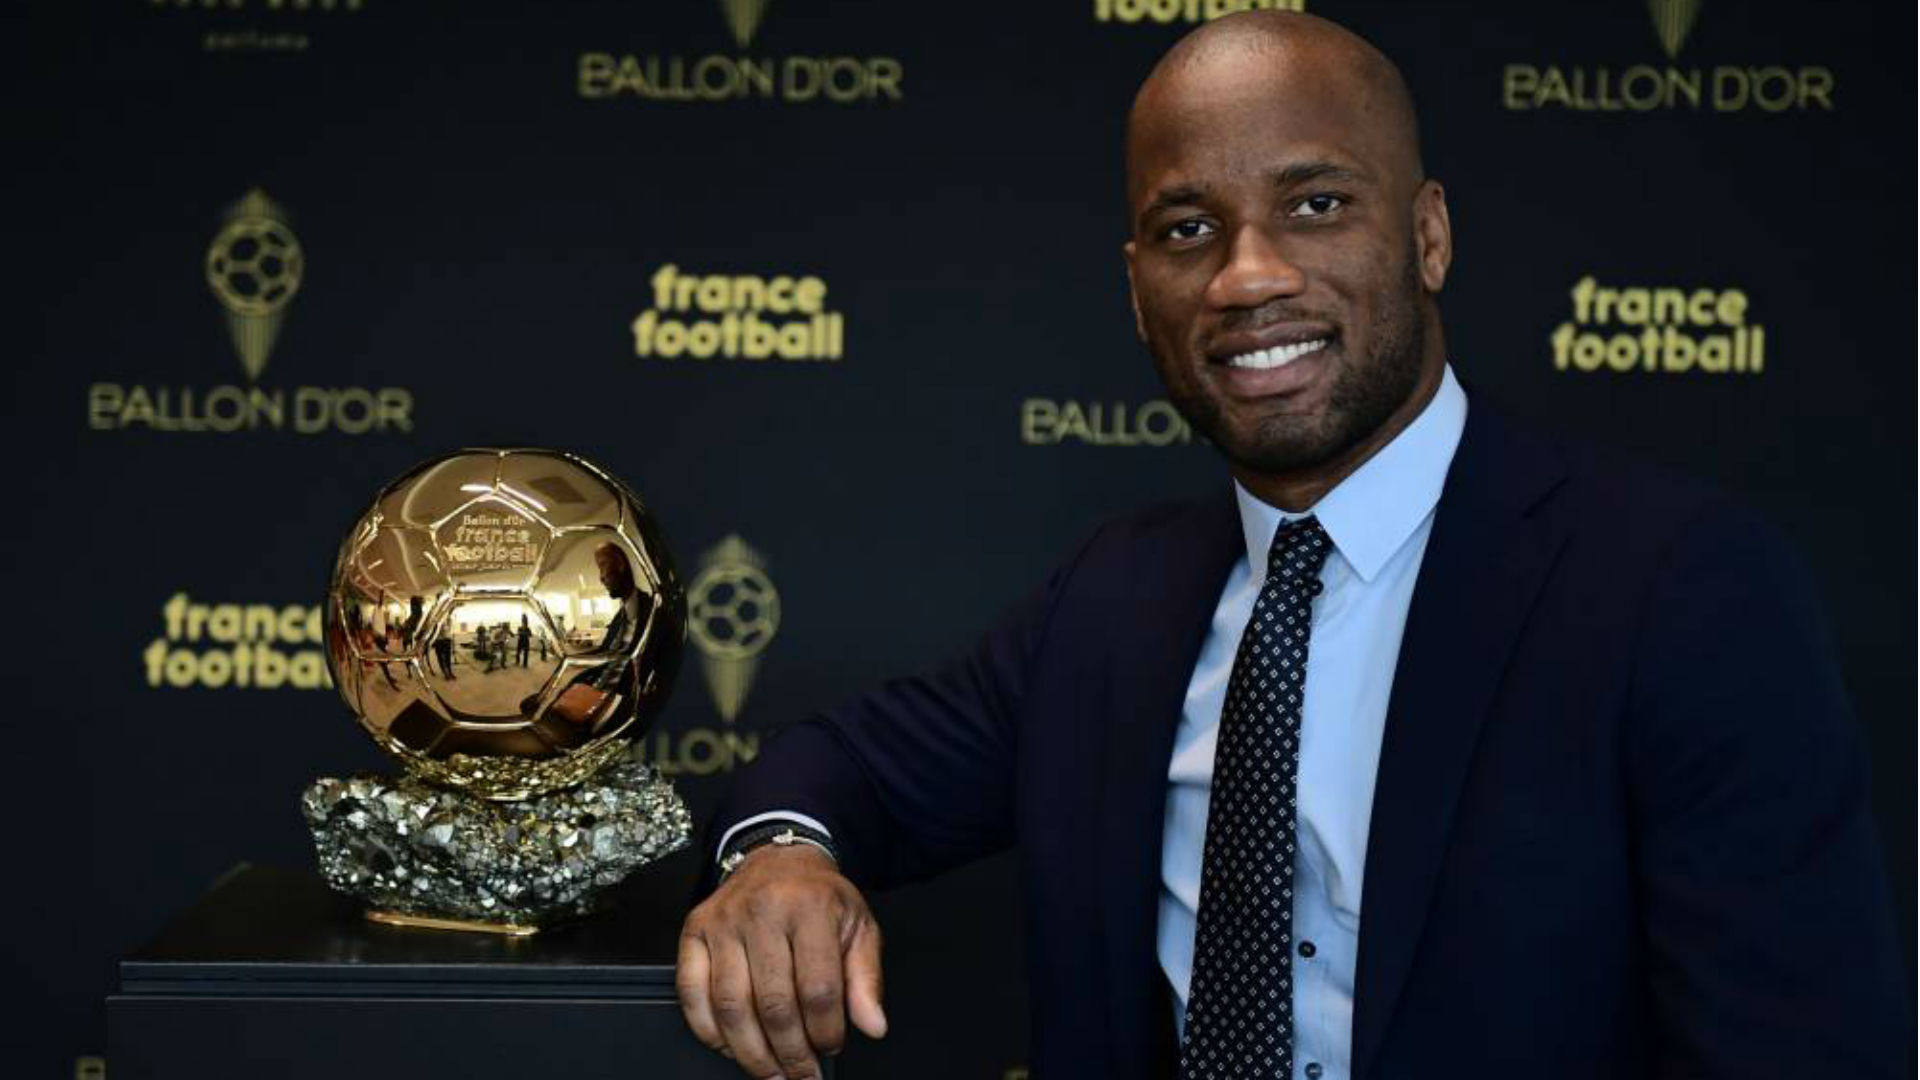 Image result for didier drogba ballon d'or